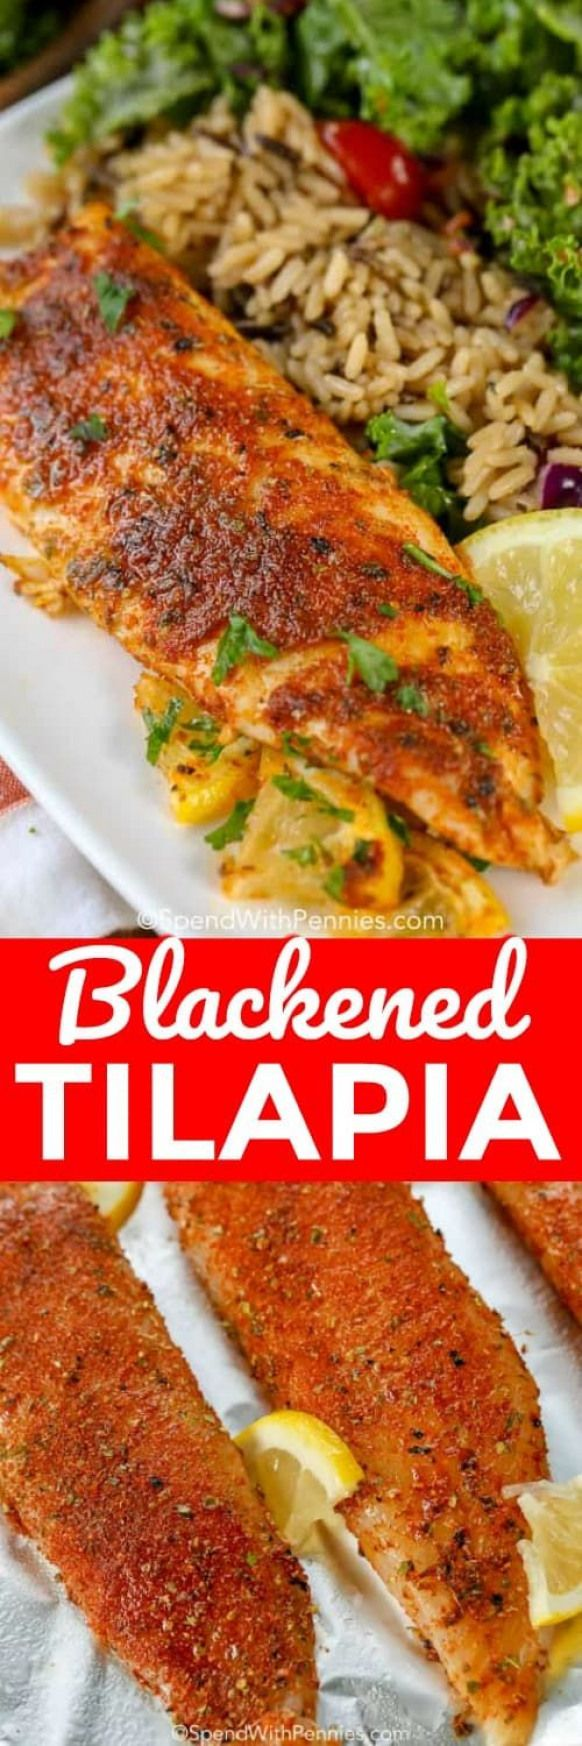 Your favorite recipe source for healthy food [Paleo, Vegan, Gluten free] Blackened Tilapia is a delicious blackened fish recipe that is on the table in under 10 minutes! Perfect for a quick weeknight meal and so easy to make!